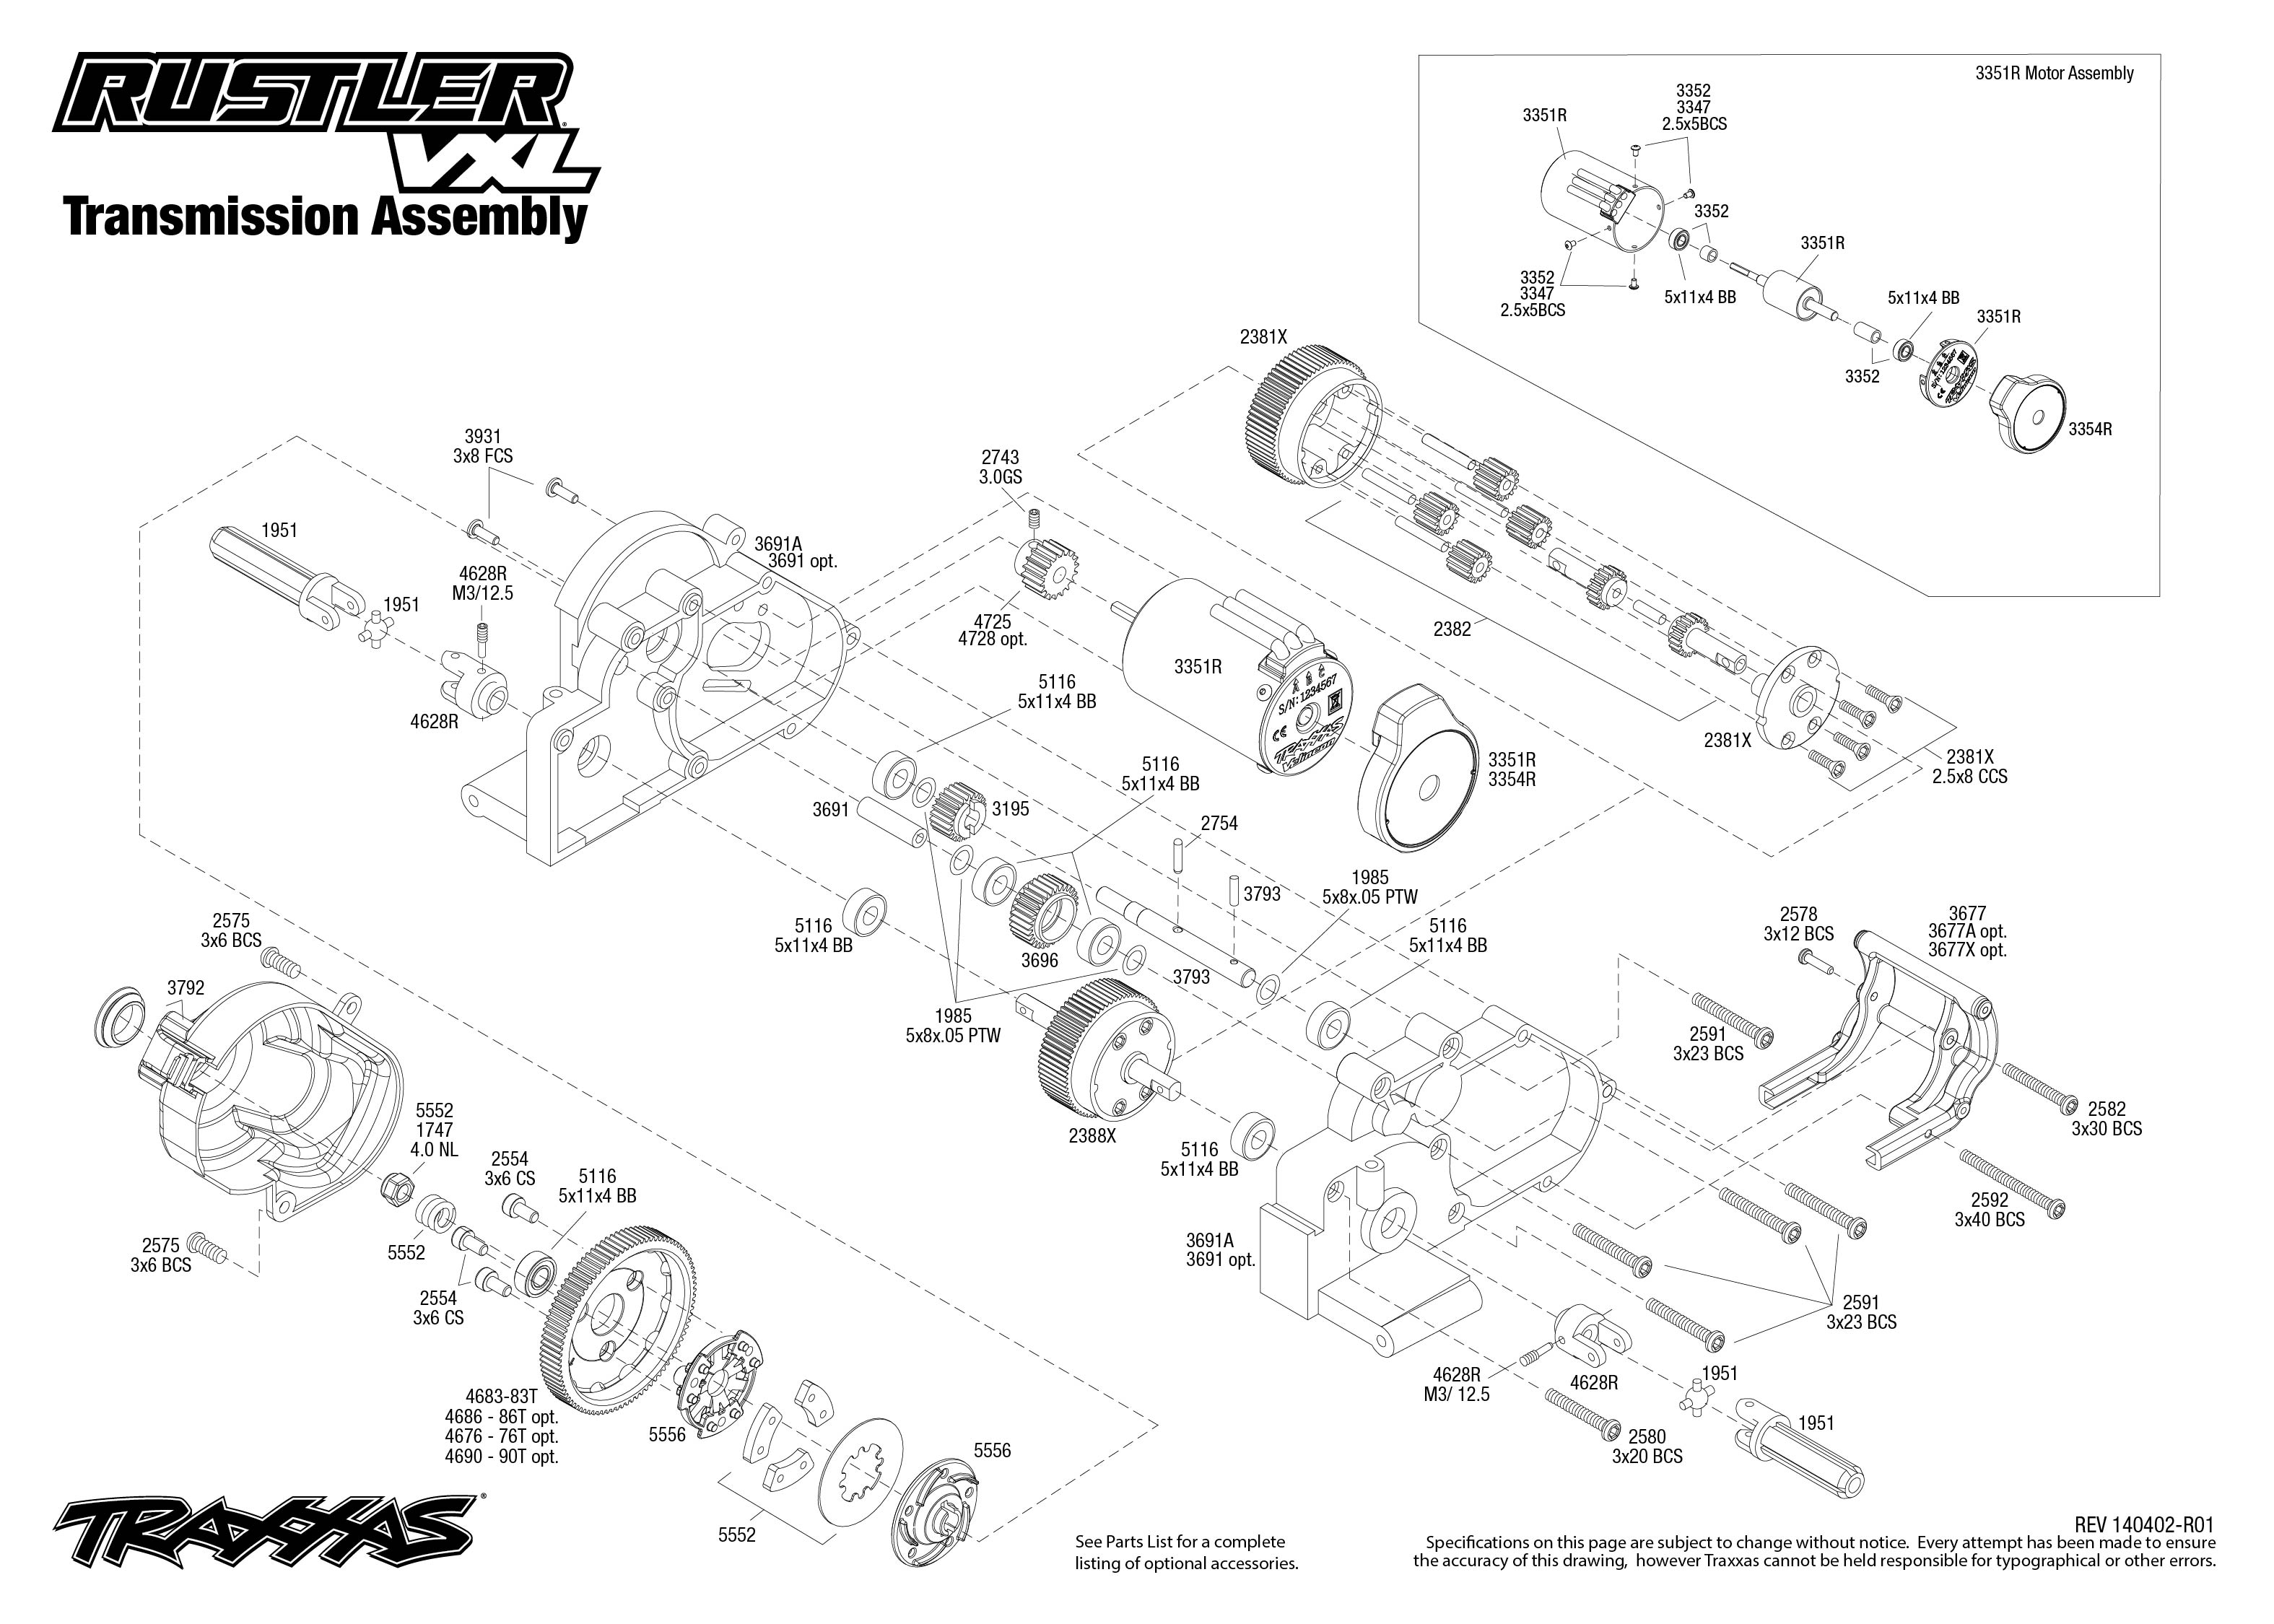 rustler vxl (37076) transmission assembly traxxas traxxas rustler parts list diagram use magnifier buttons to zoom exploded view click part numbers for details or to add to cart